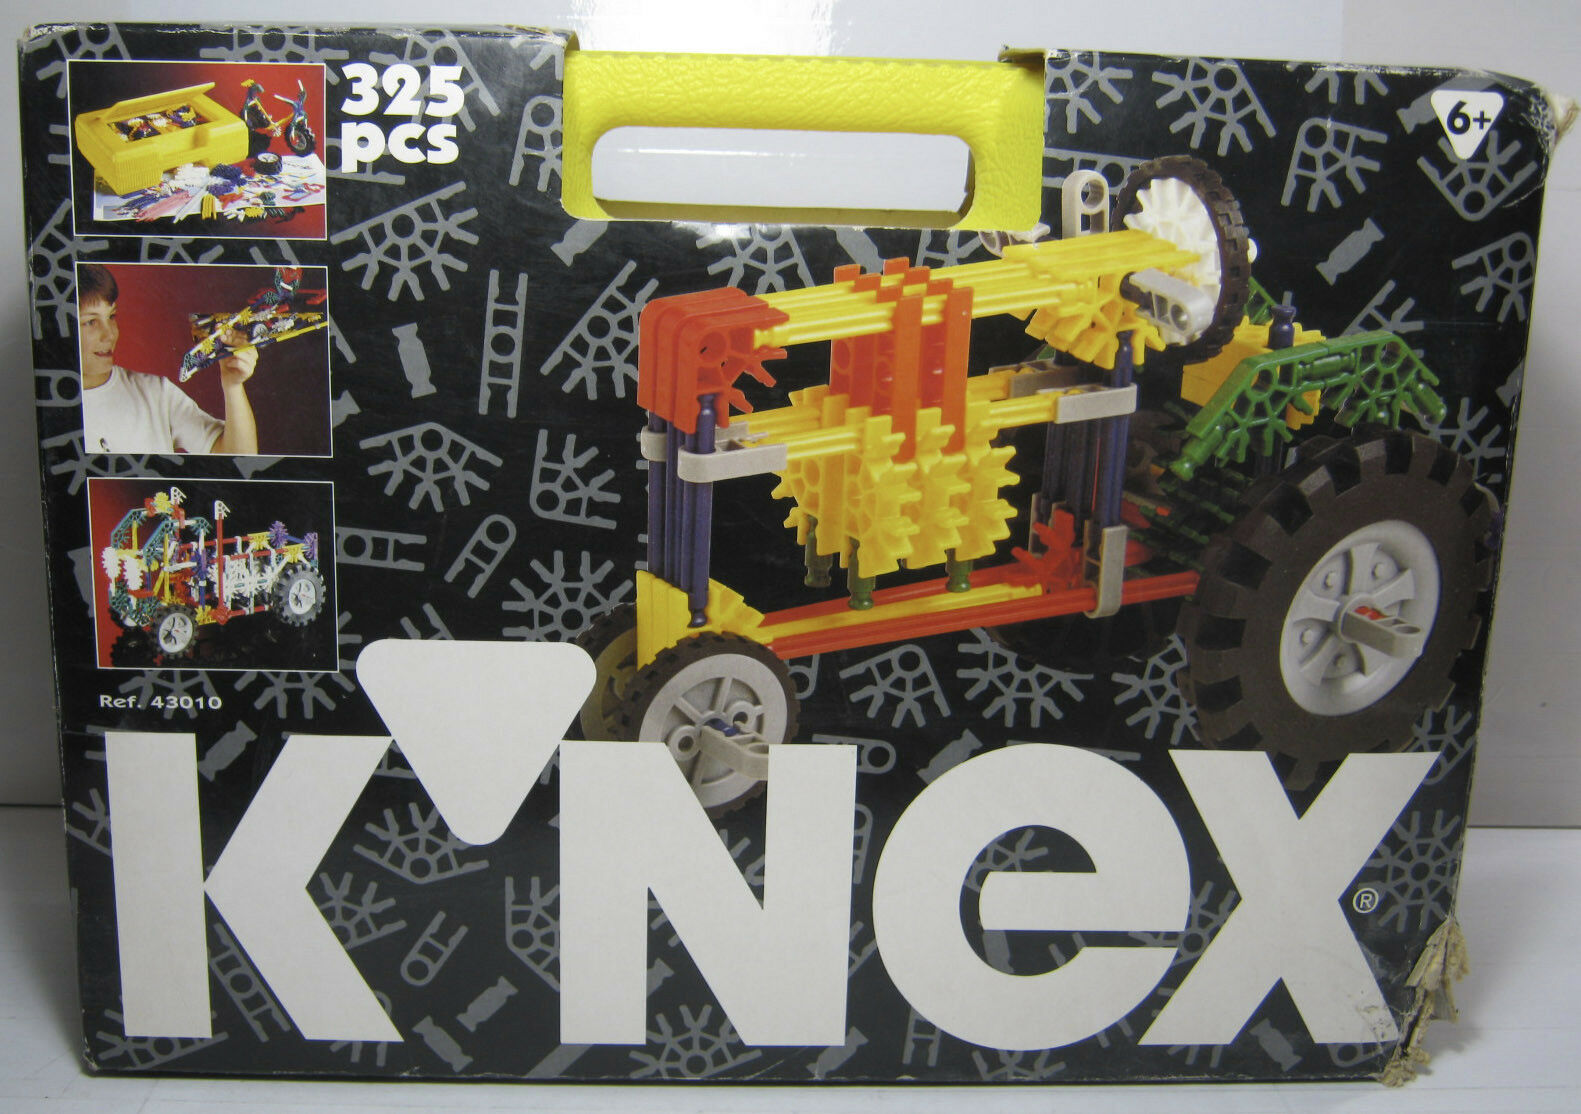 1995 K'NEX KNEX   43010 POWER 3 MODELS 325 PIECES PCS SUITCASE BIG SET MISB NEW